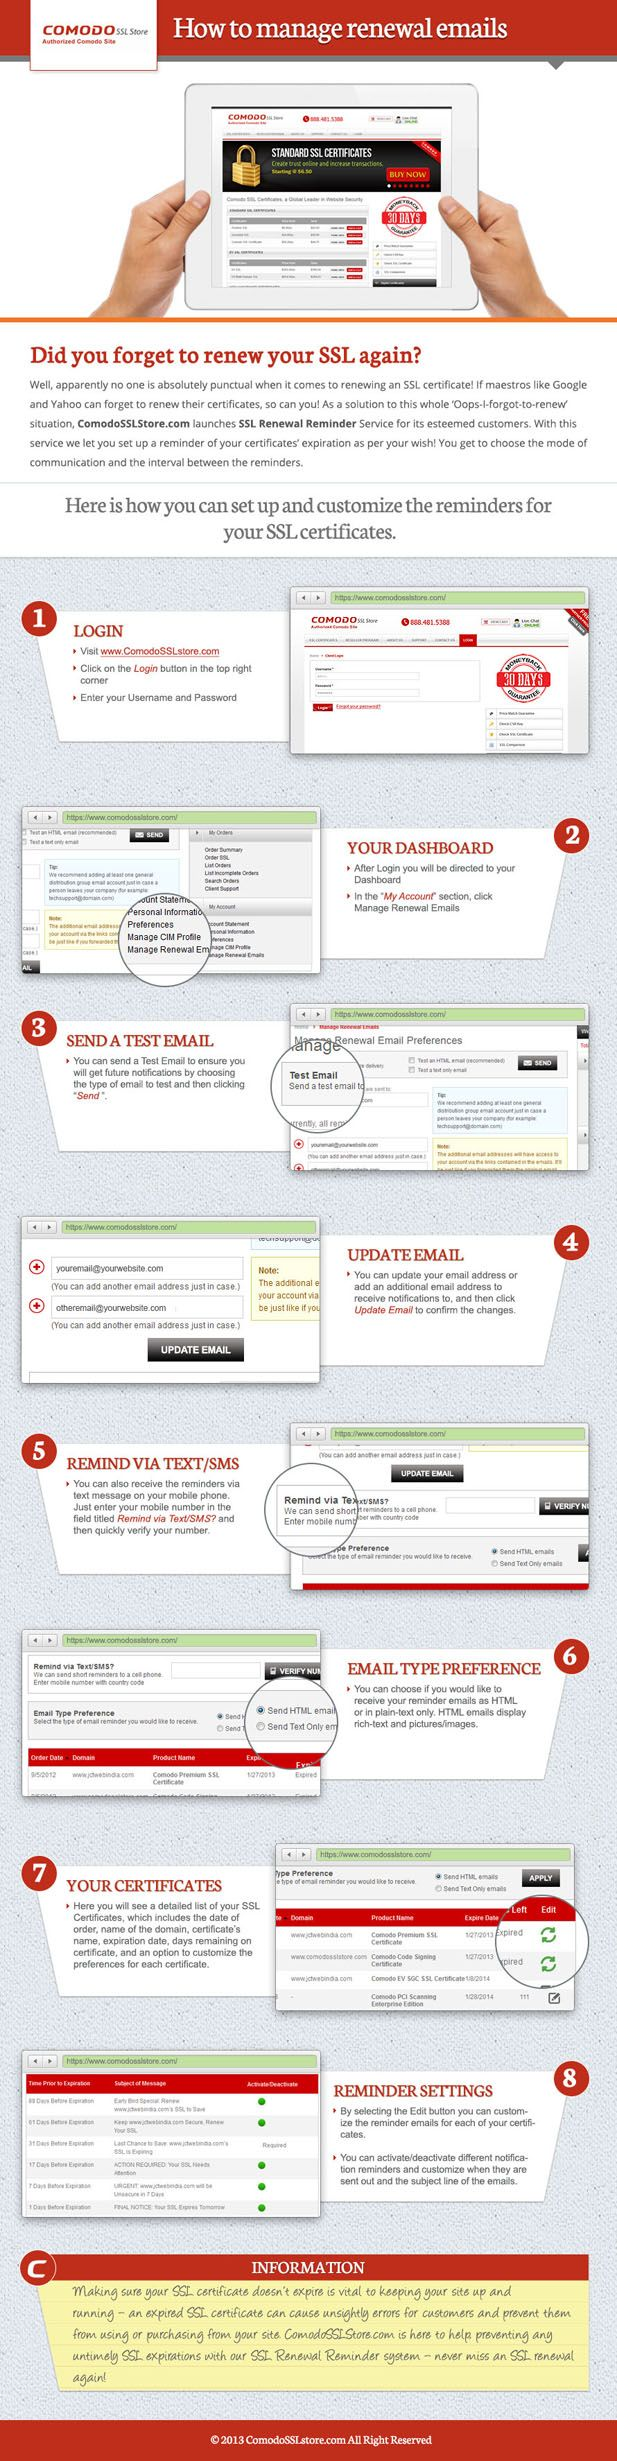 22 best comodo ssl certificate images on pinterest certificate comodo ssl store explain you how to manage ssl renewal emails 1betcityfo Gallery